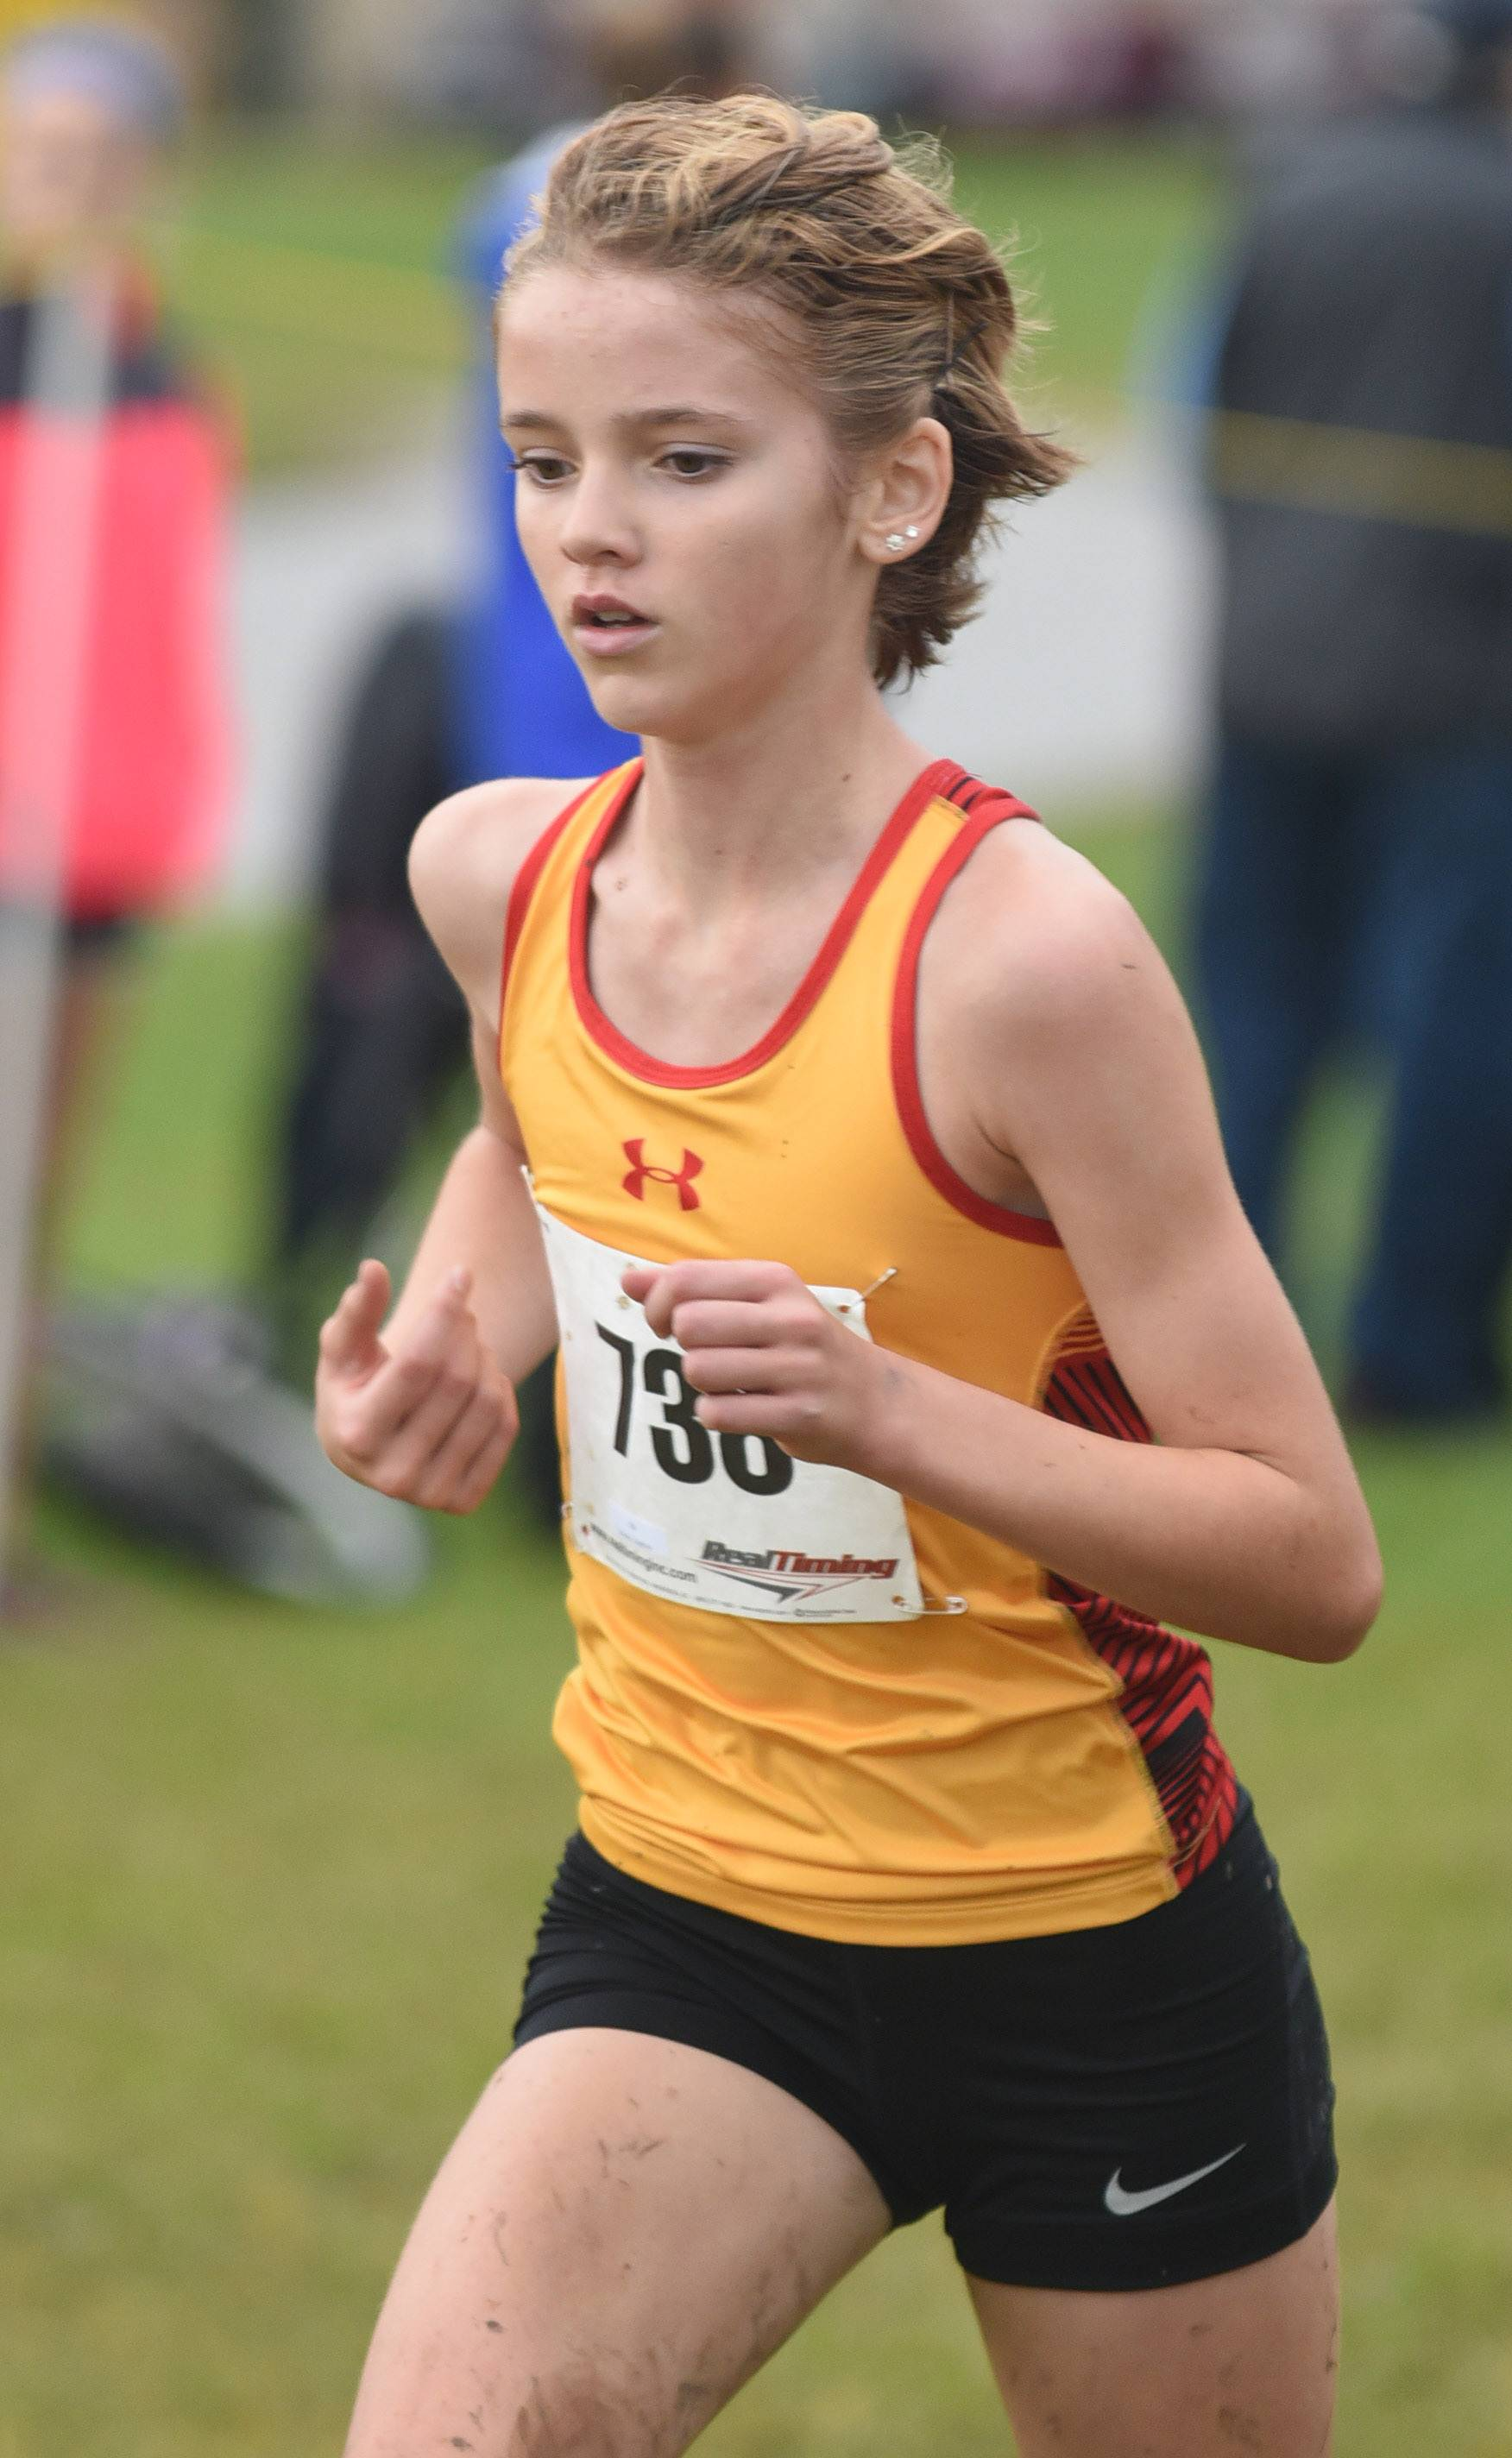 Batavia's Daphne Kolody takes fourth place (and second for her team) in the girls varsity race with a time of 18:50.5 at the St. Charles North cross country regional on Saturday.